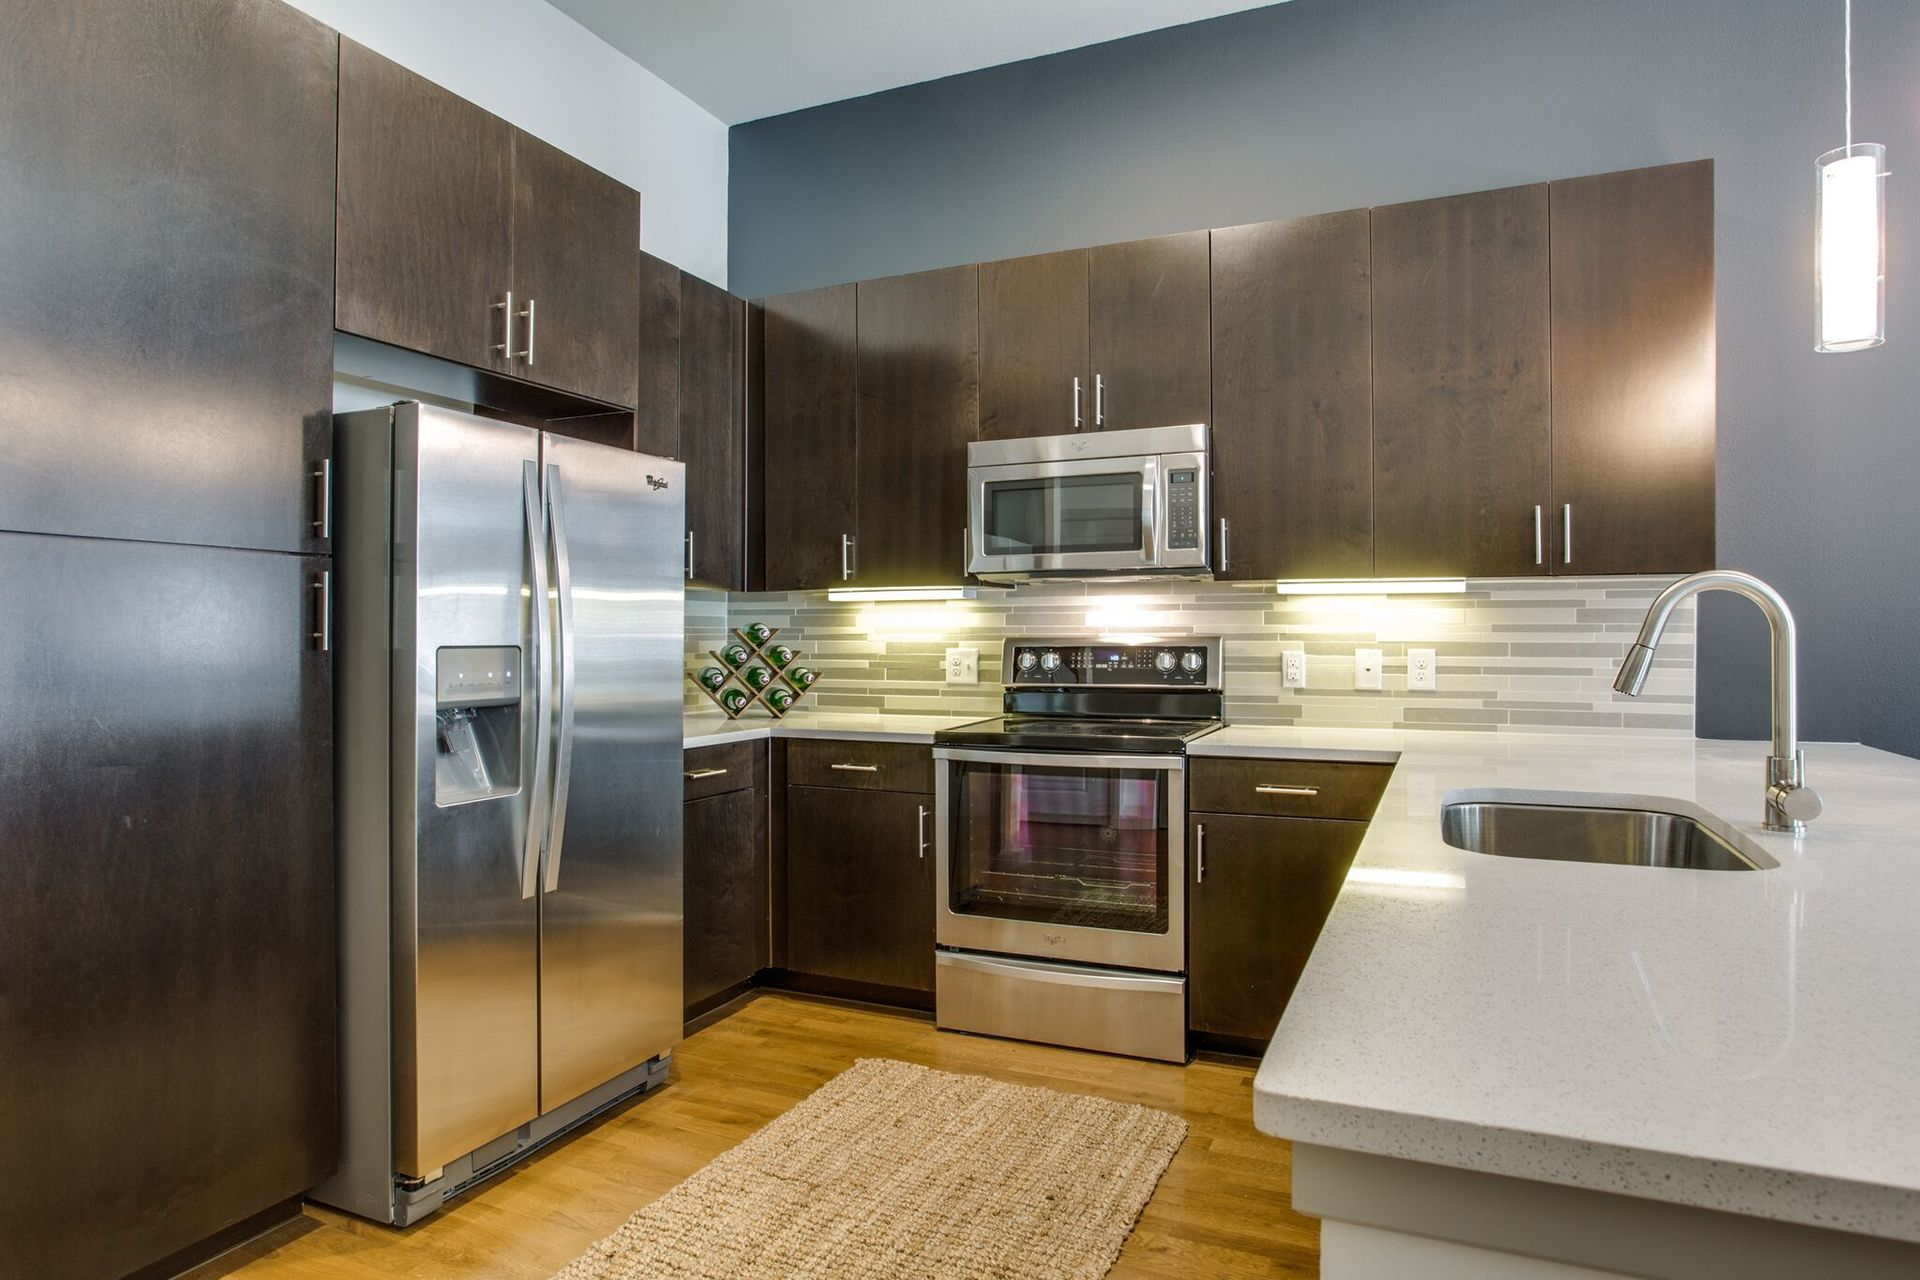 This apartment complex has kitchens that are equipped with quartz countertops and designer backsplash and  under-cabinet lighting, by Hensley Lamkin Rachel.